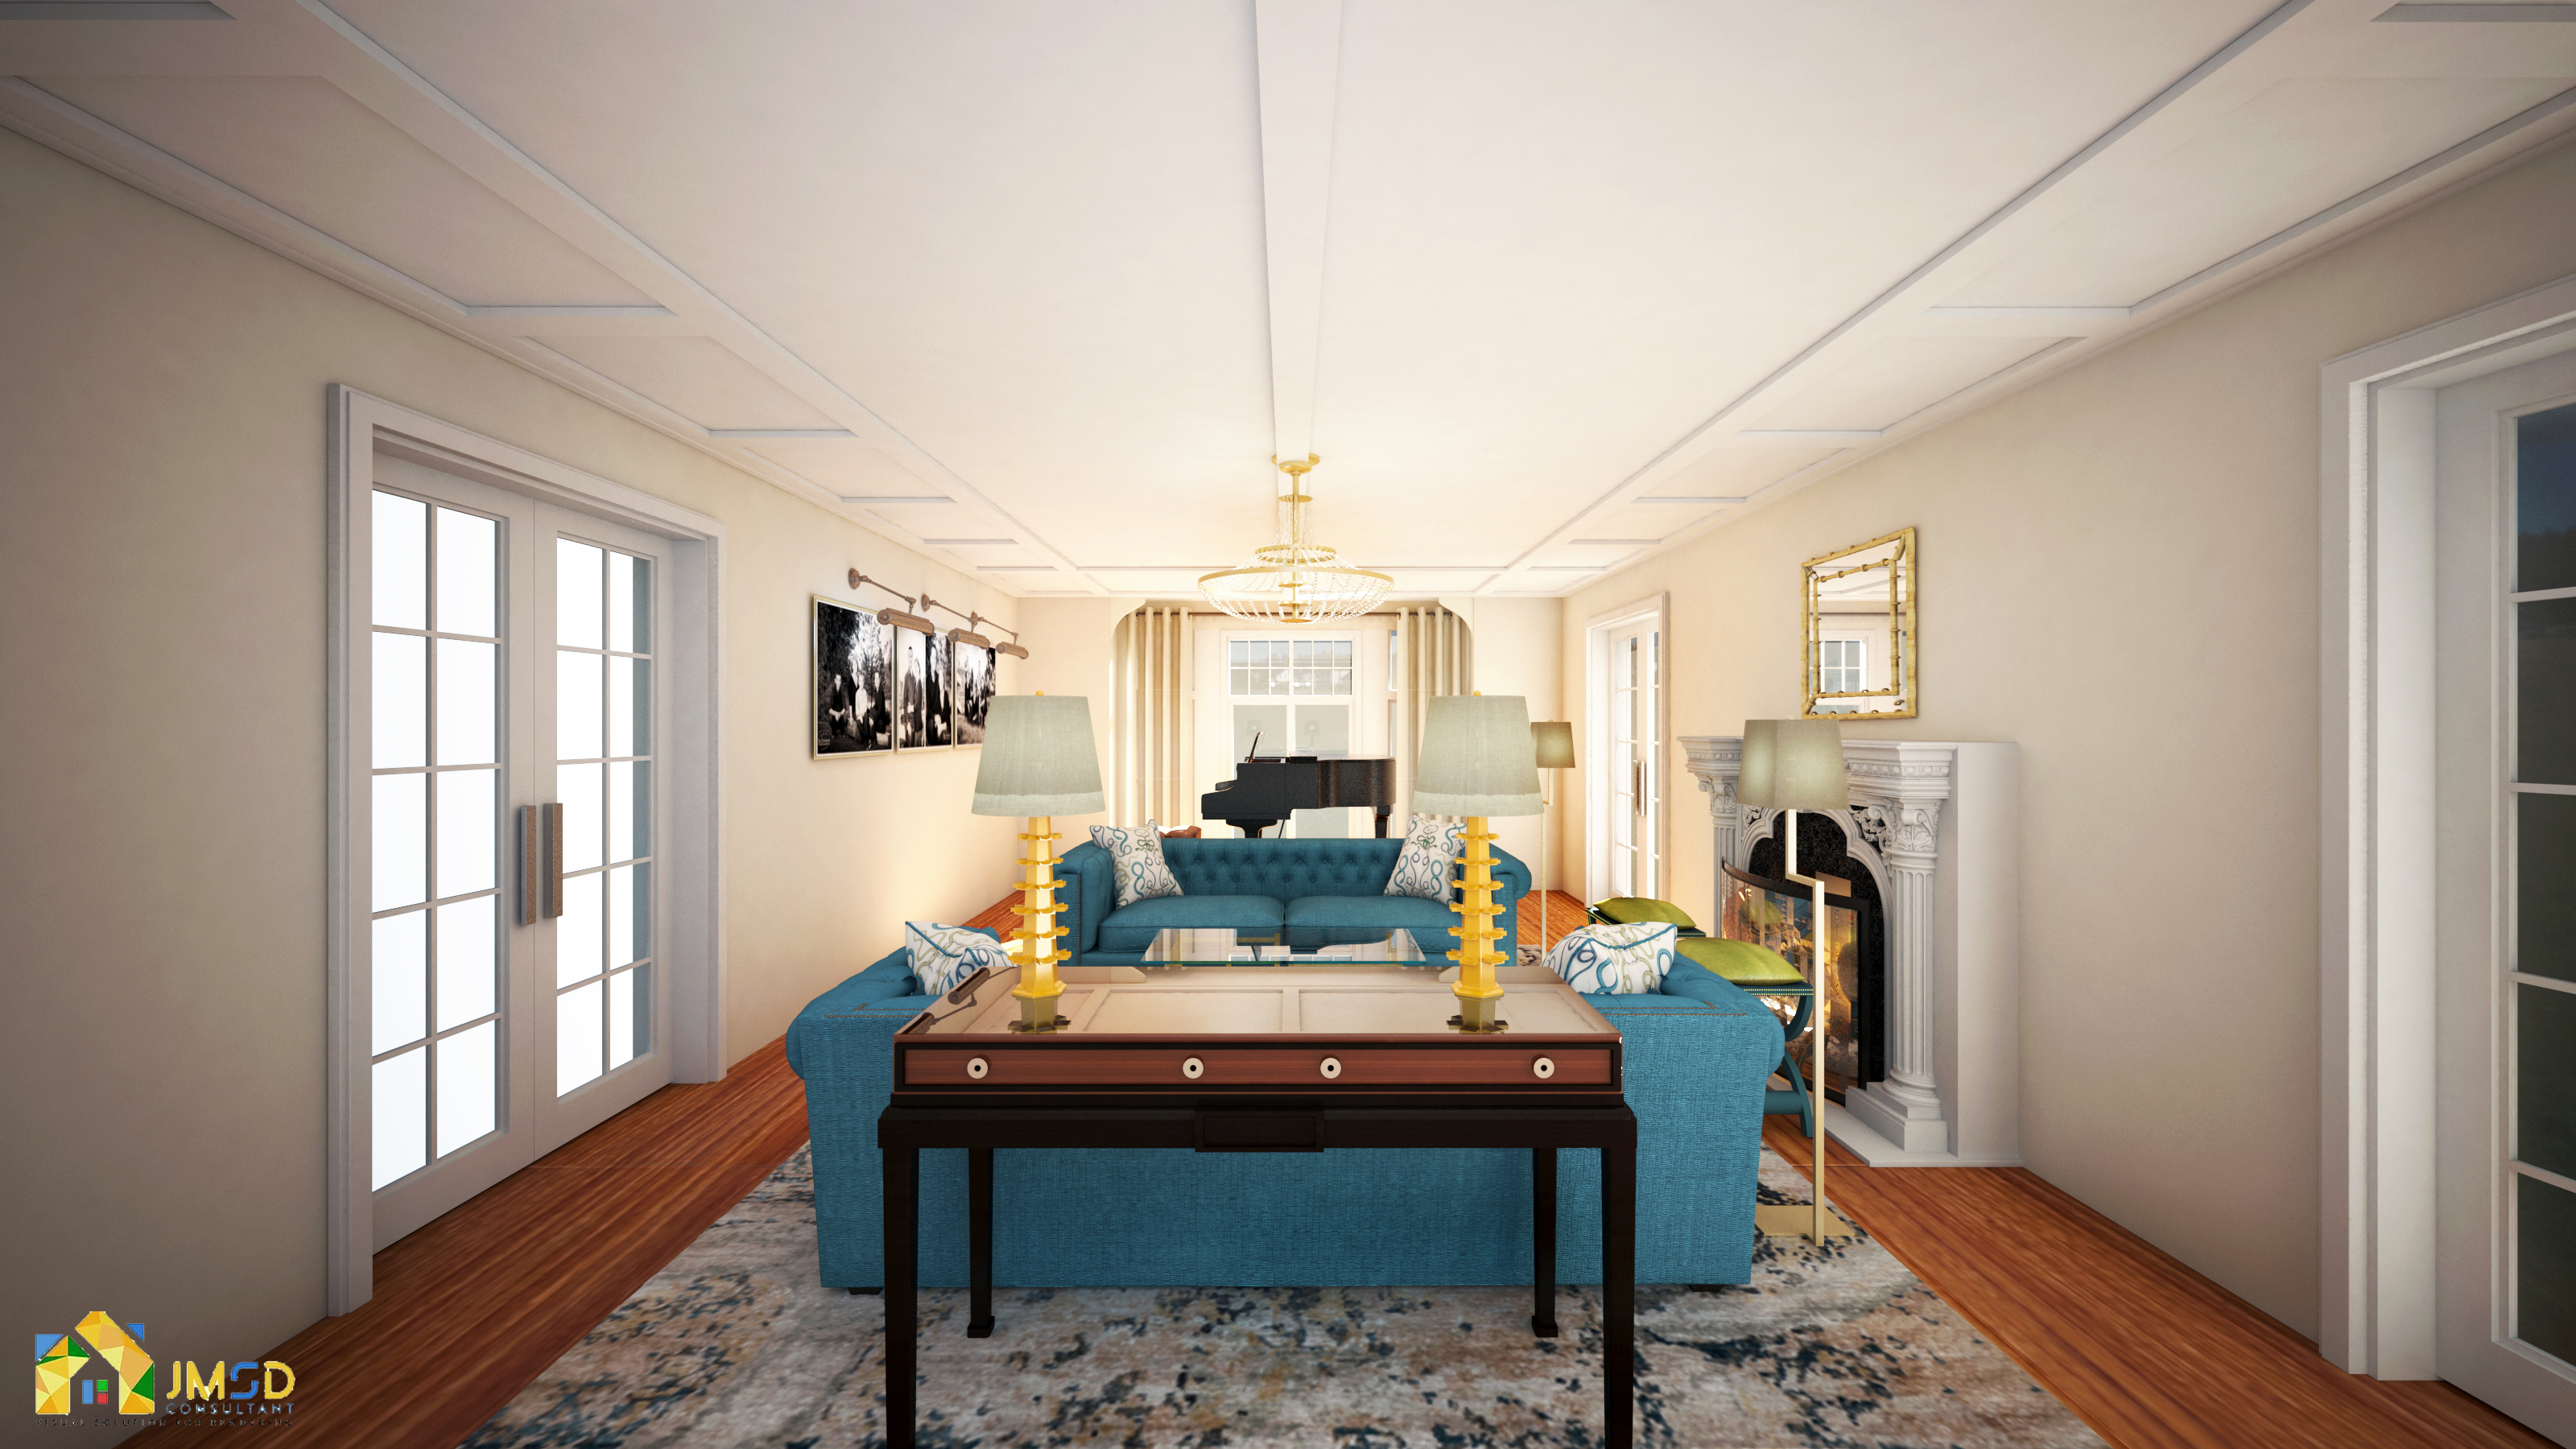 Architectural Rendering Services NYC